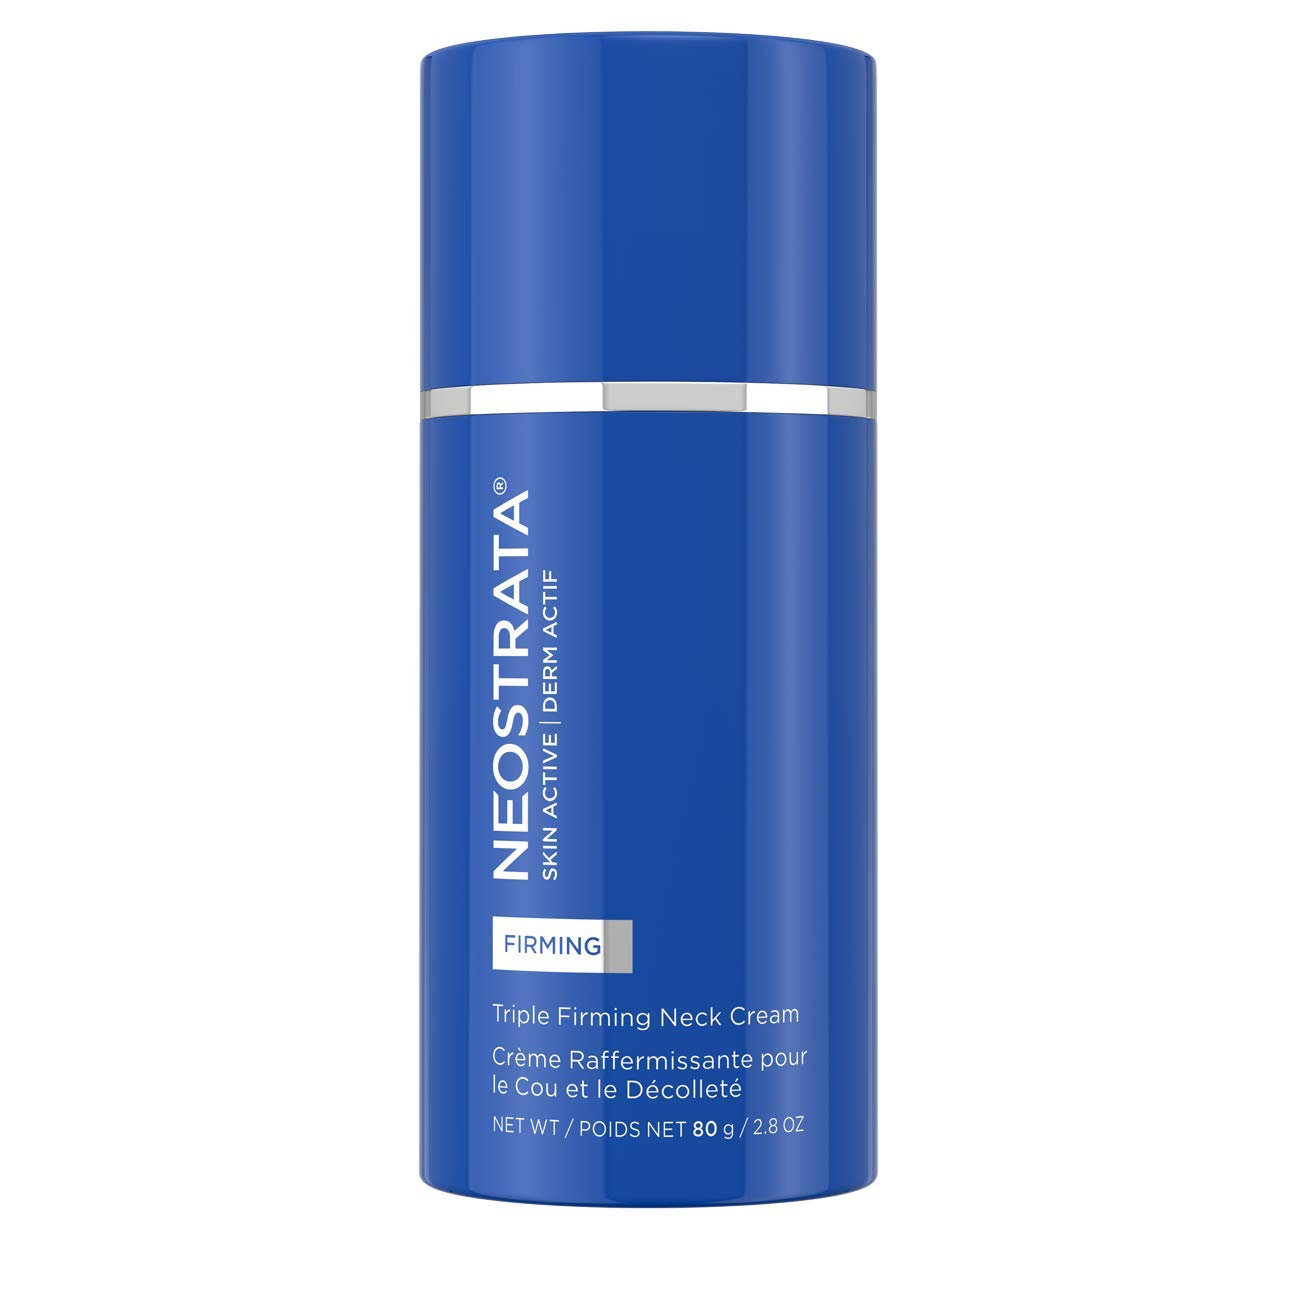 NEOSTRATA SKIN ACTIVE Firming Triple Firming Neck Cream, 2.8 ounces